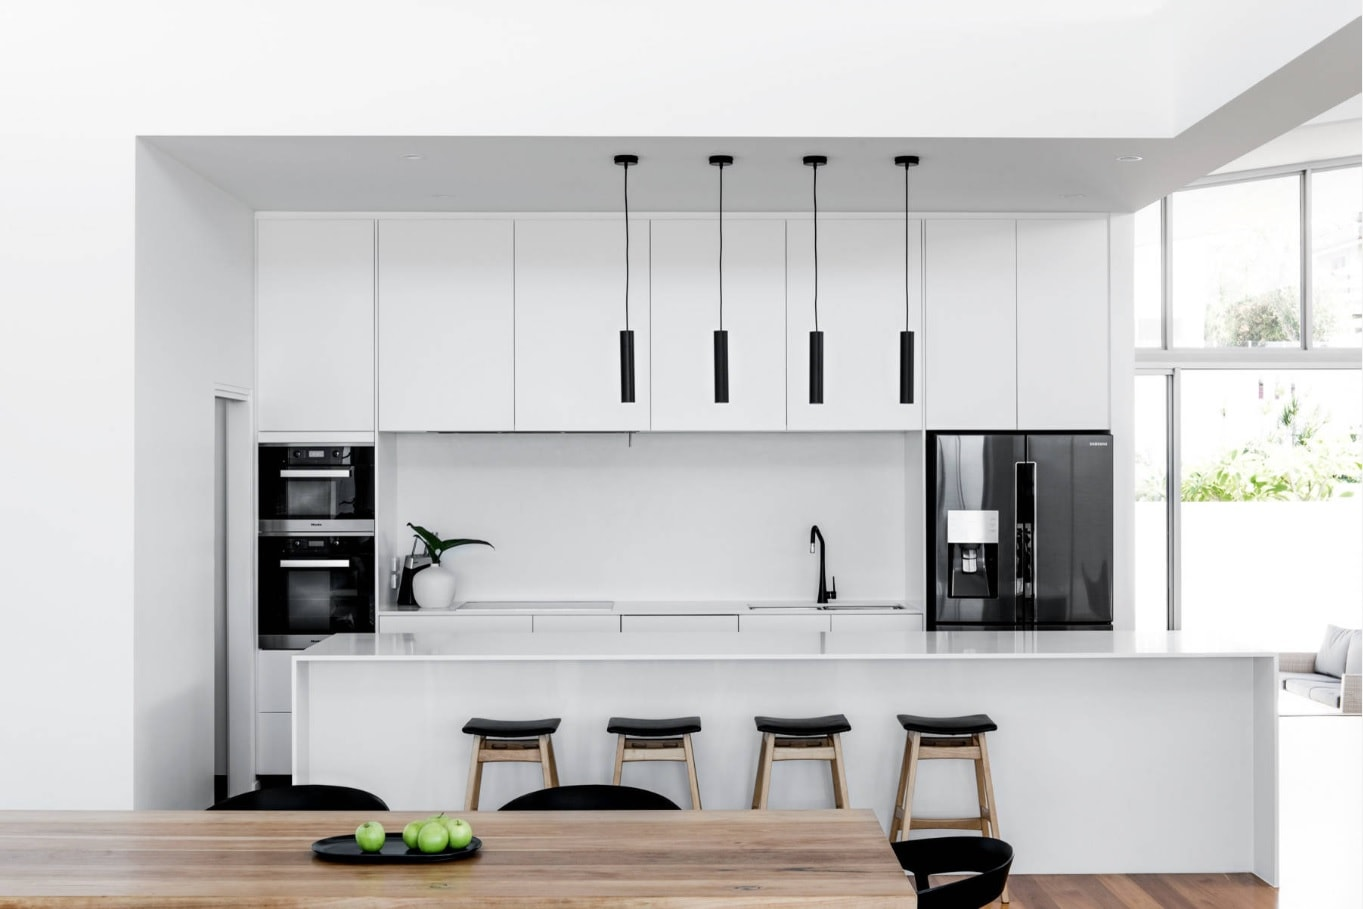 Kitchen and dining room combined space and the black/white color theme